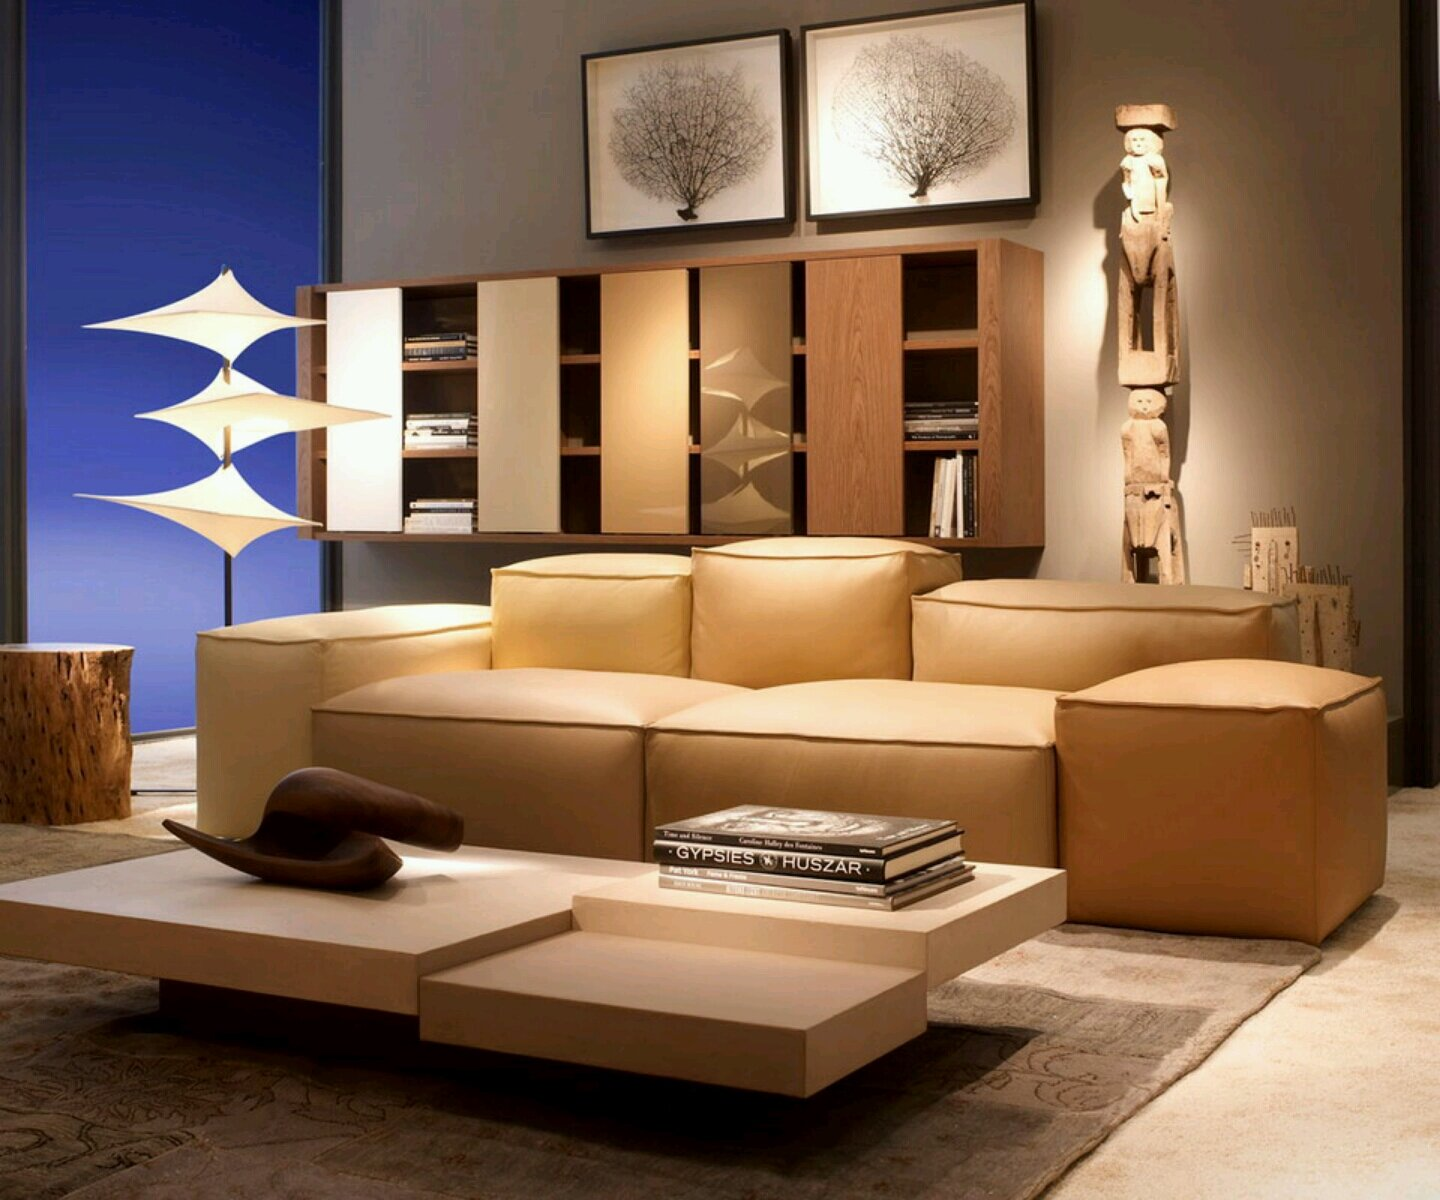 15 really beautiful sofa designs and ideas for Home furniture ideas